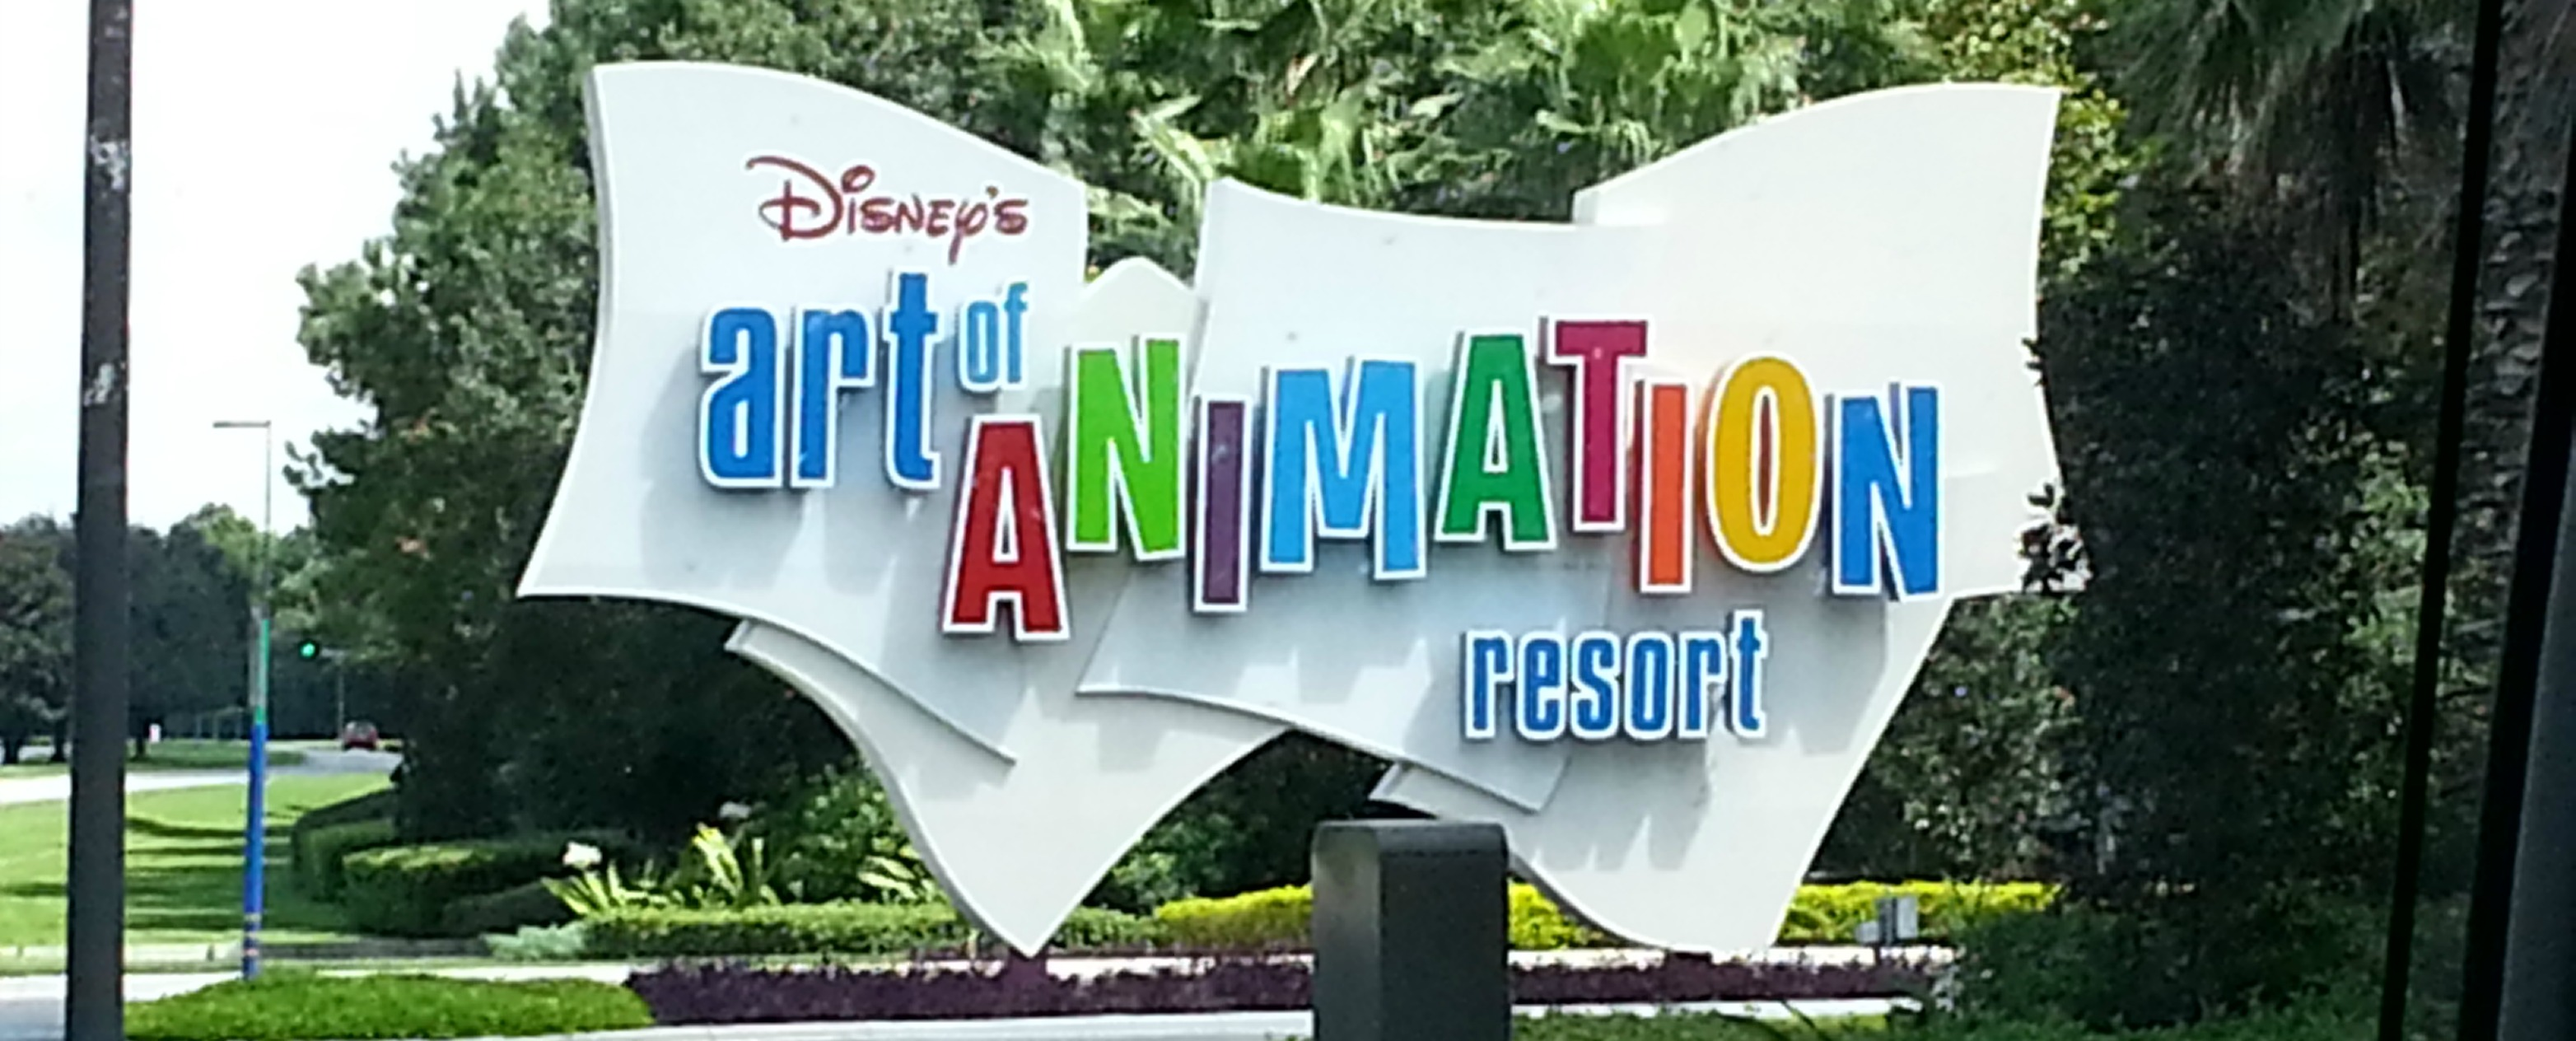 Immersed in the Magic at Disney's Art of Animation Resort